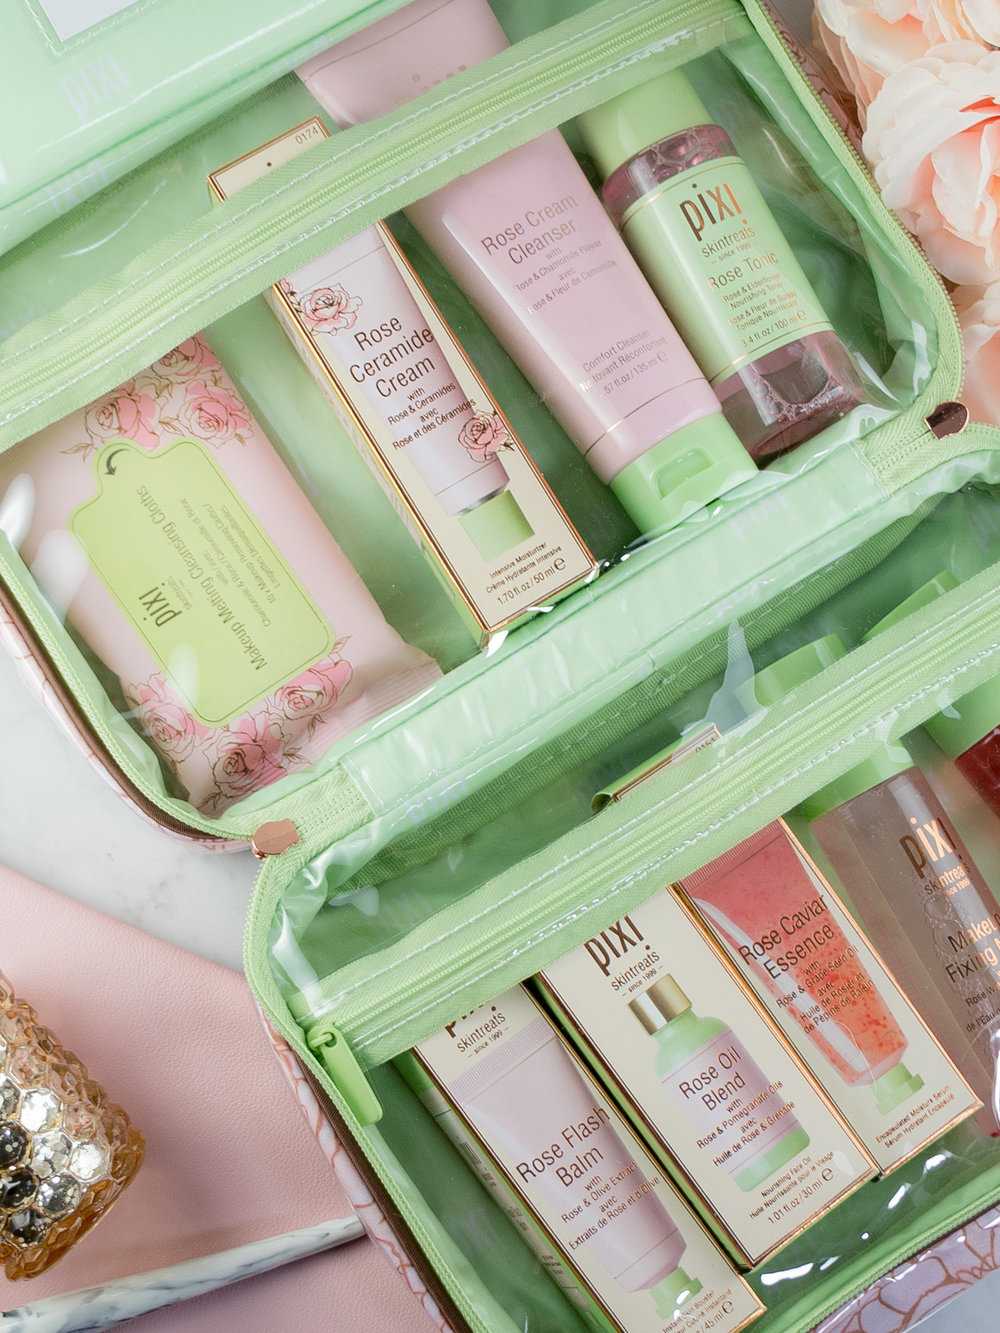 Winter Getaway Favorites from Pixi